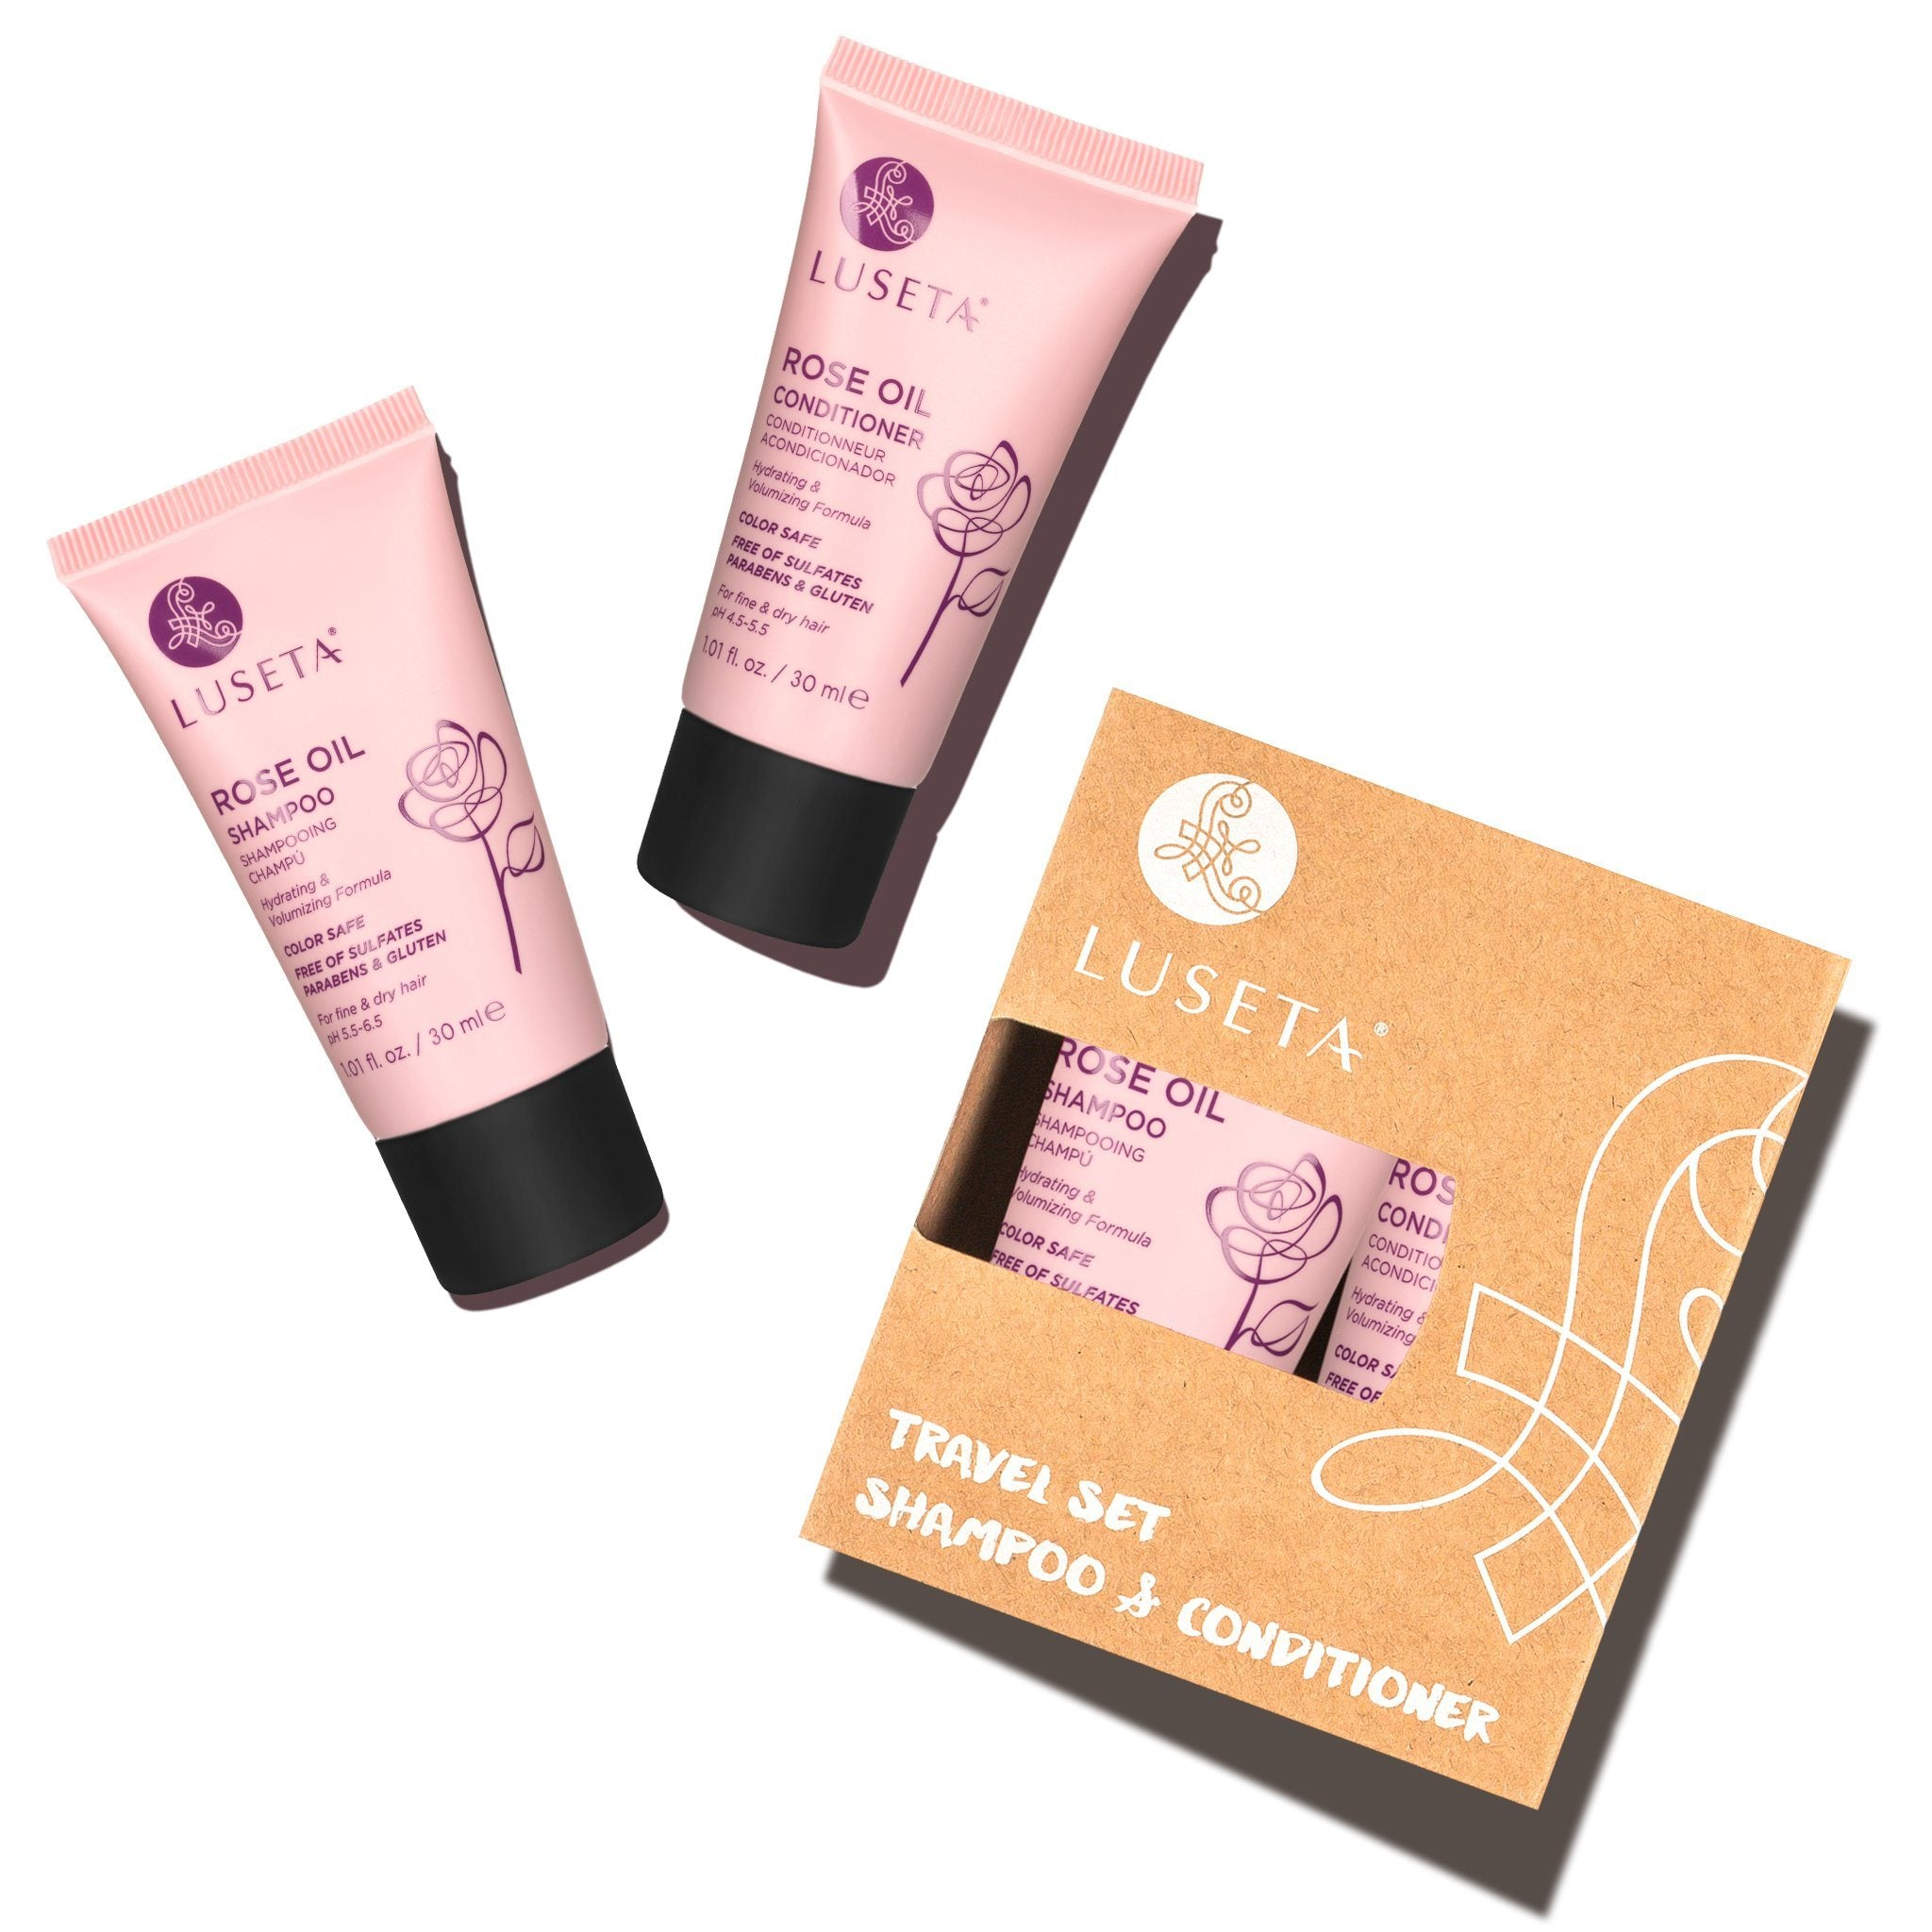 Travel Size Set - Luseta Beauty